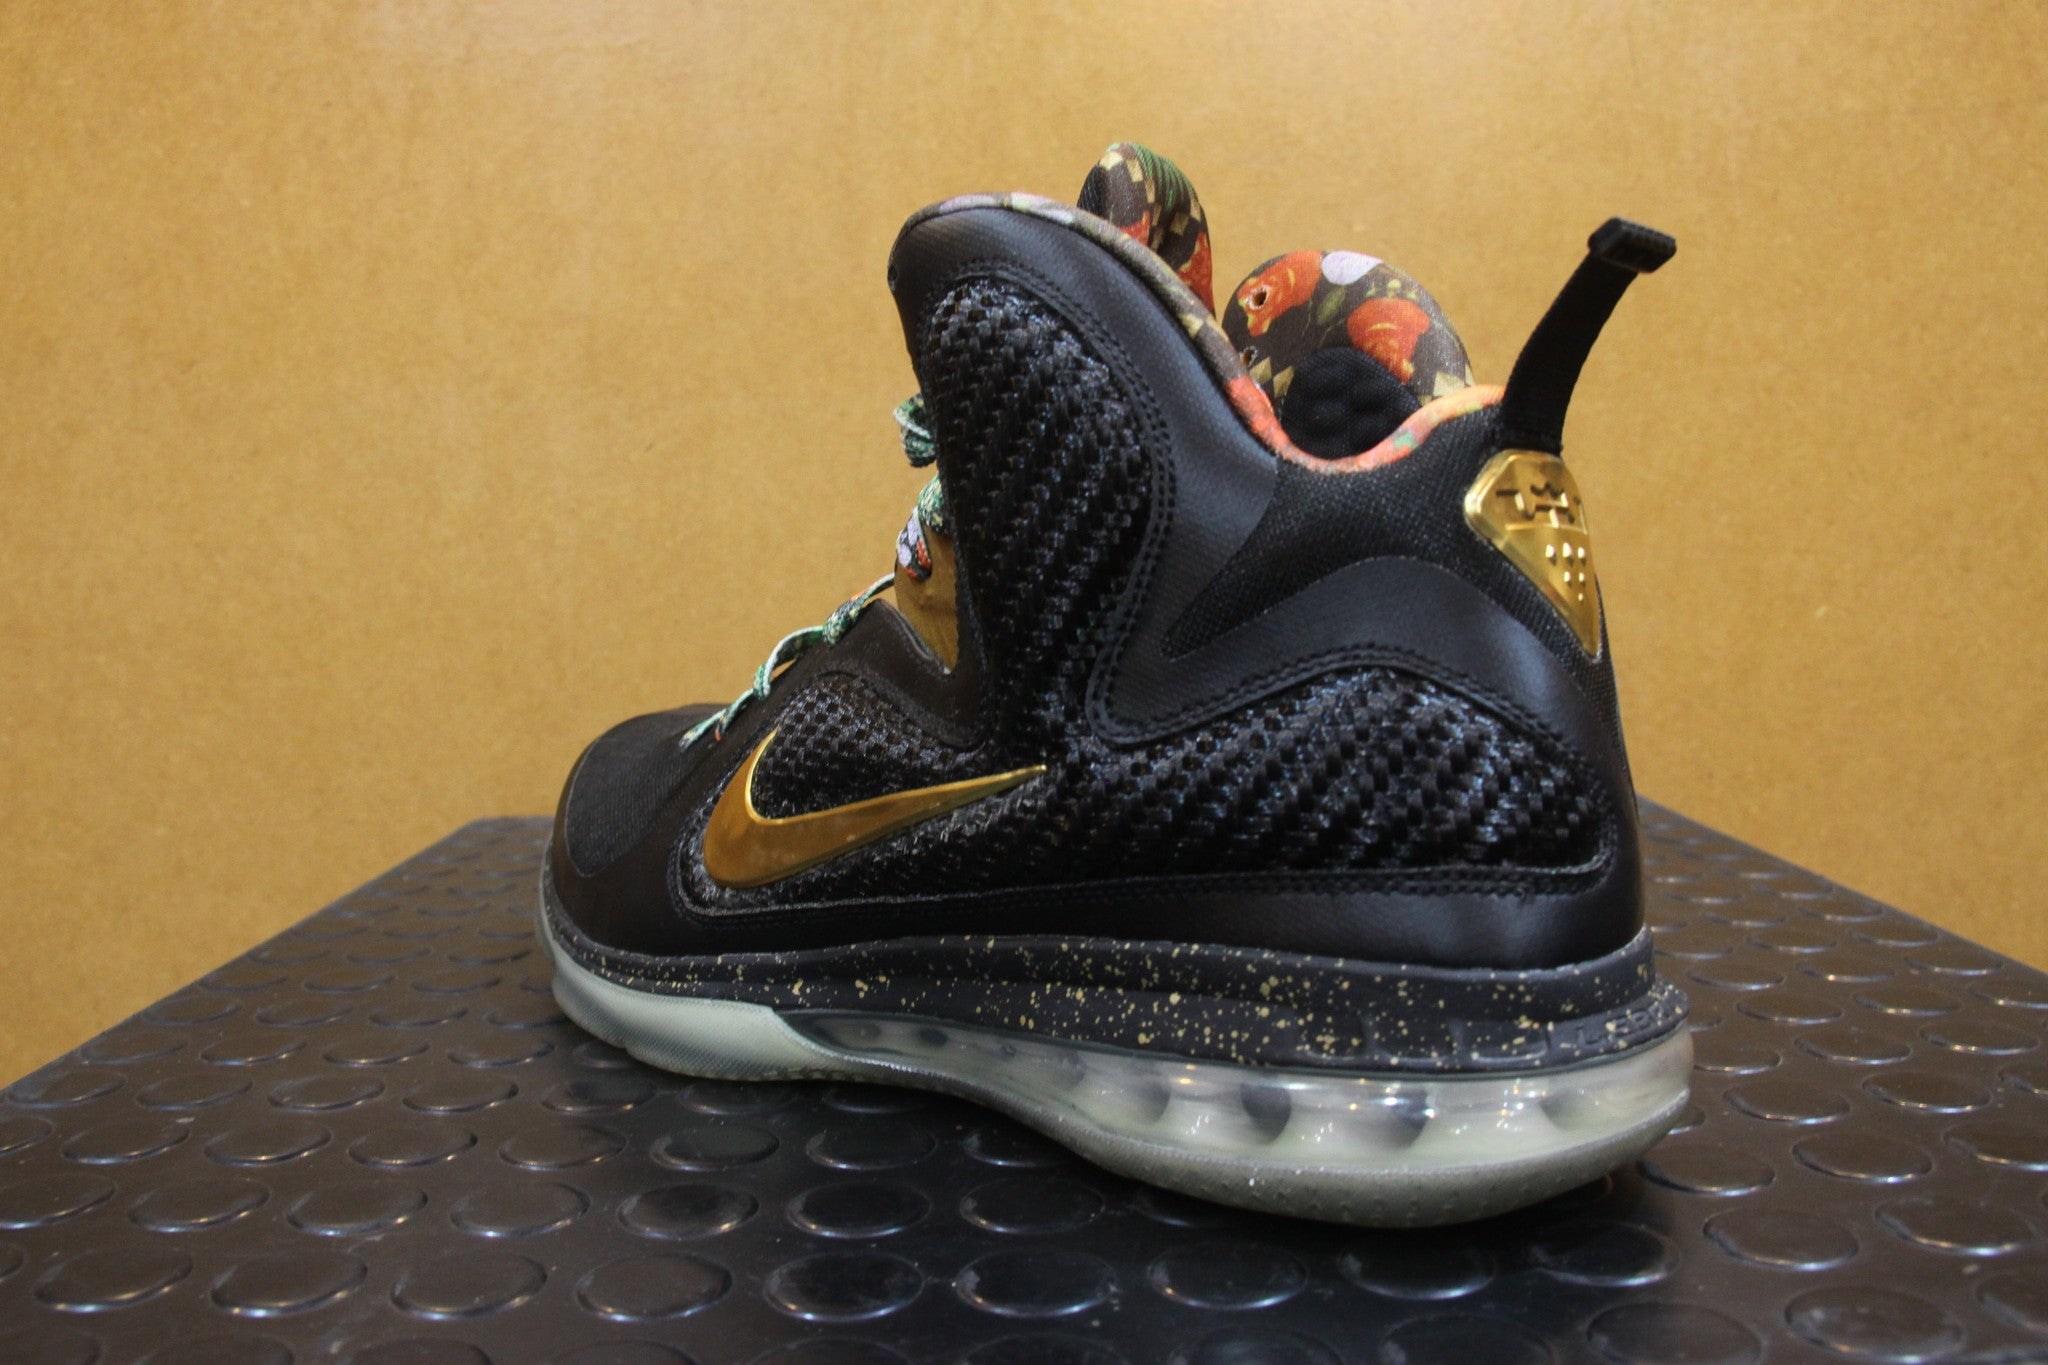 Nike Lebron 9 Watch the Throne